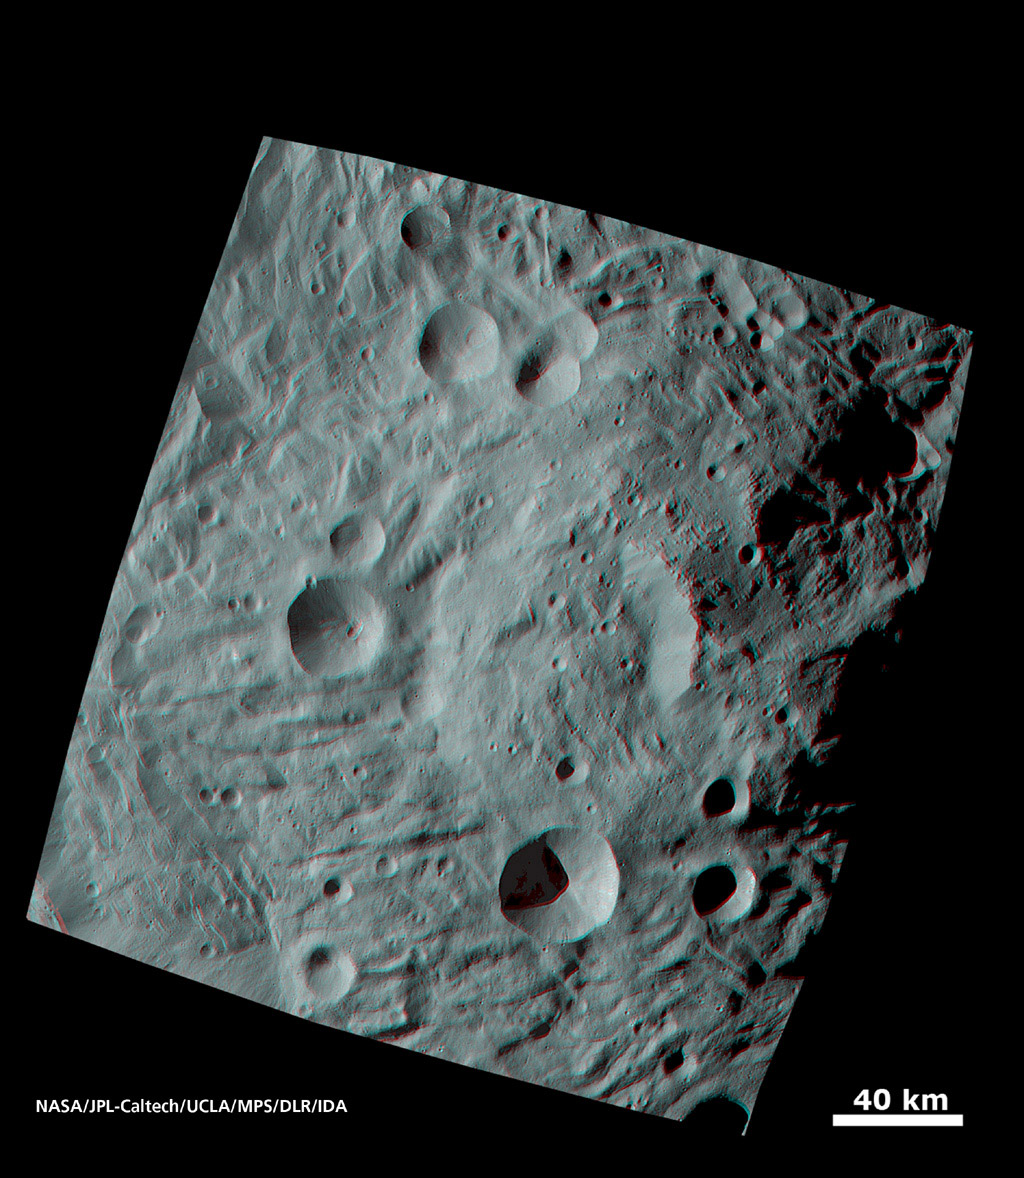 When NASA's Dawn spacecraft sent the first images of the giant asteroid Vesta to the ground, scientists were fascinated by an enormous mound inside a big circular depression at the south pole. You need 3-D glasses to view this image.